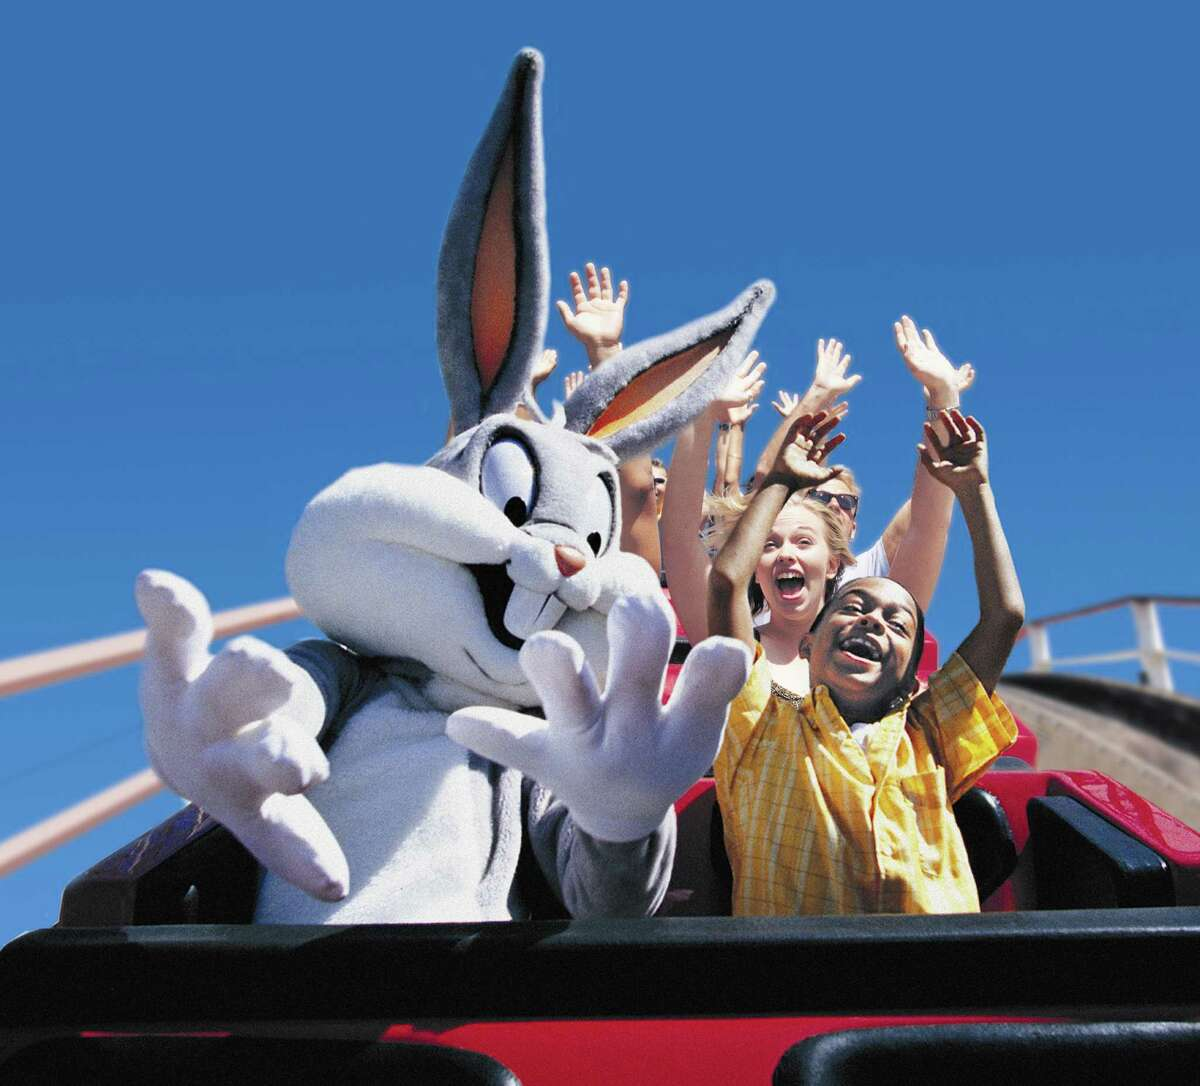 Six Flags Fiesta Texas holiday celebration comes complete with Looney Tunes characters and an opportunity to meet Santa in his castle Nov. 19 through Jan. 1.